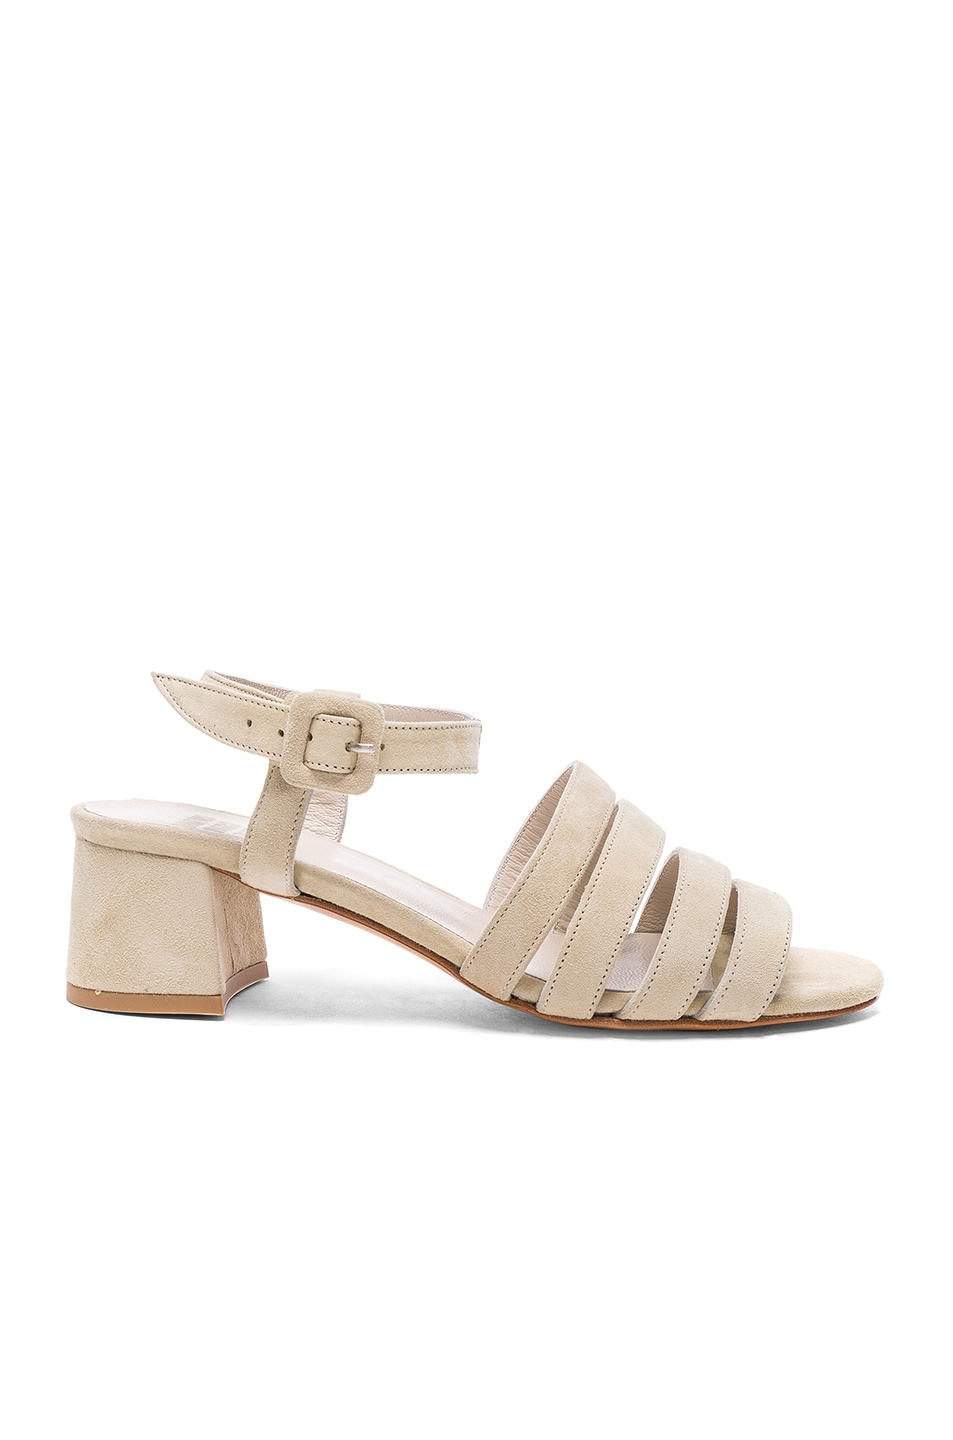 Image 1 of Maryam Nassir Zadeh Suede Palma Low Sandals in Chalk Suede